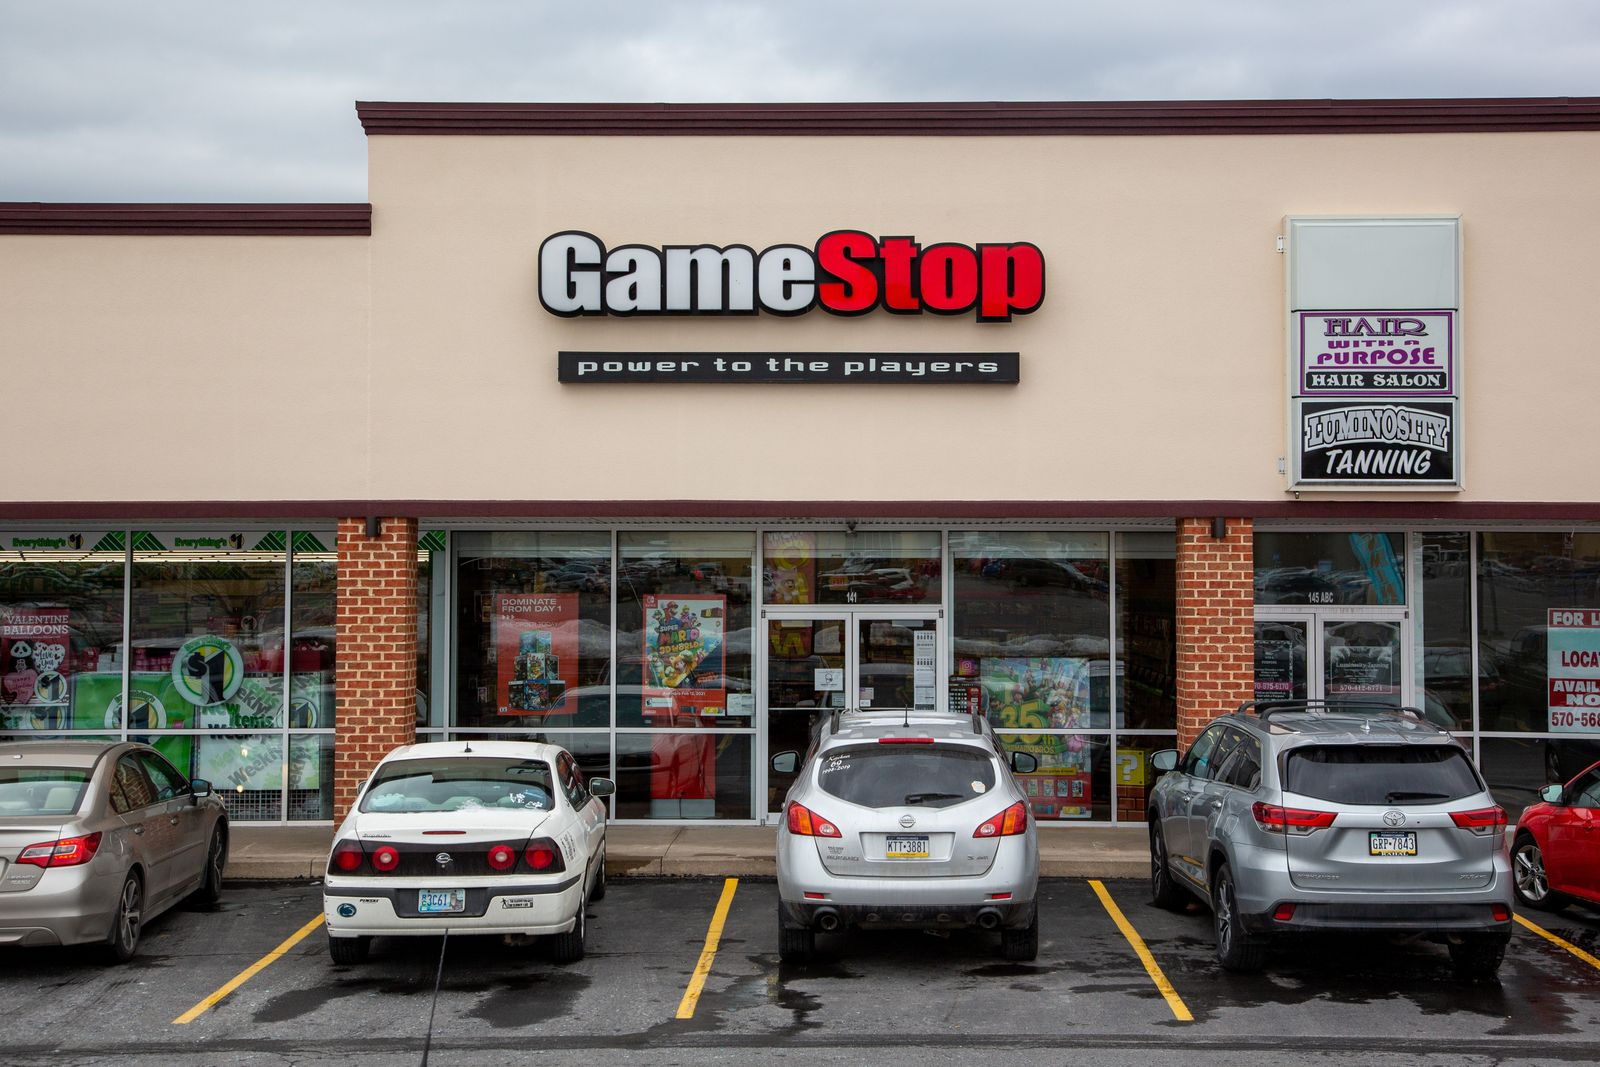 Vehicles seen parked in front of the GameStop store at the